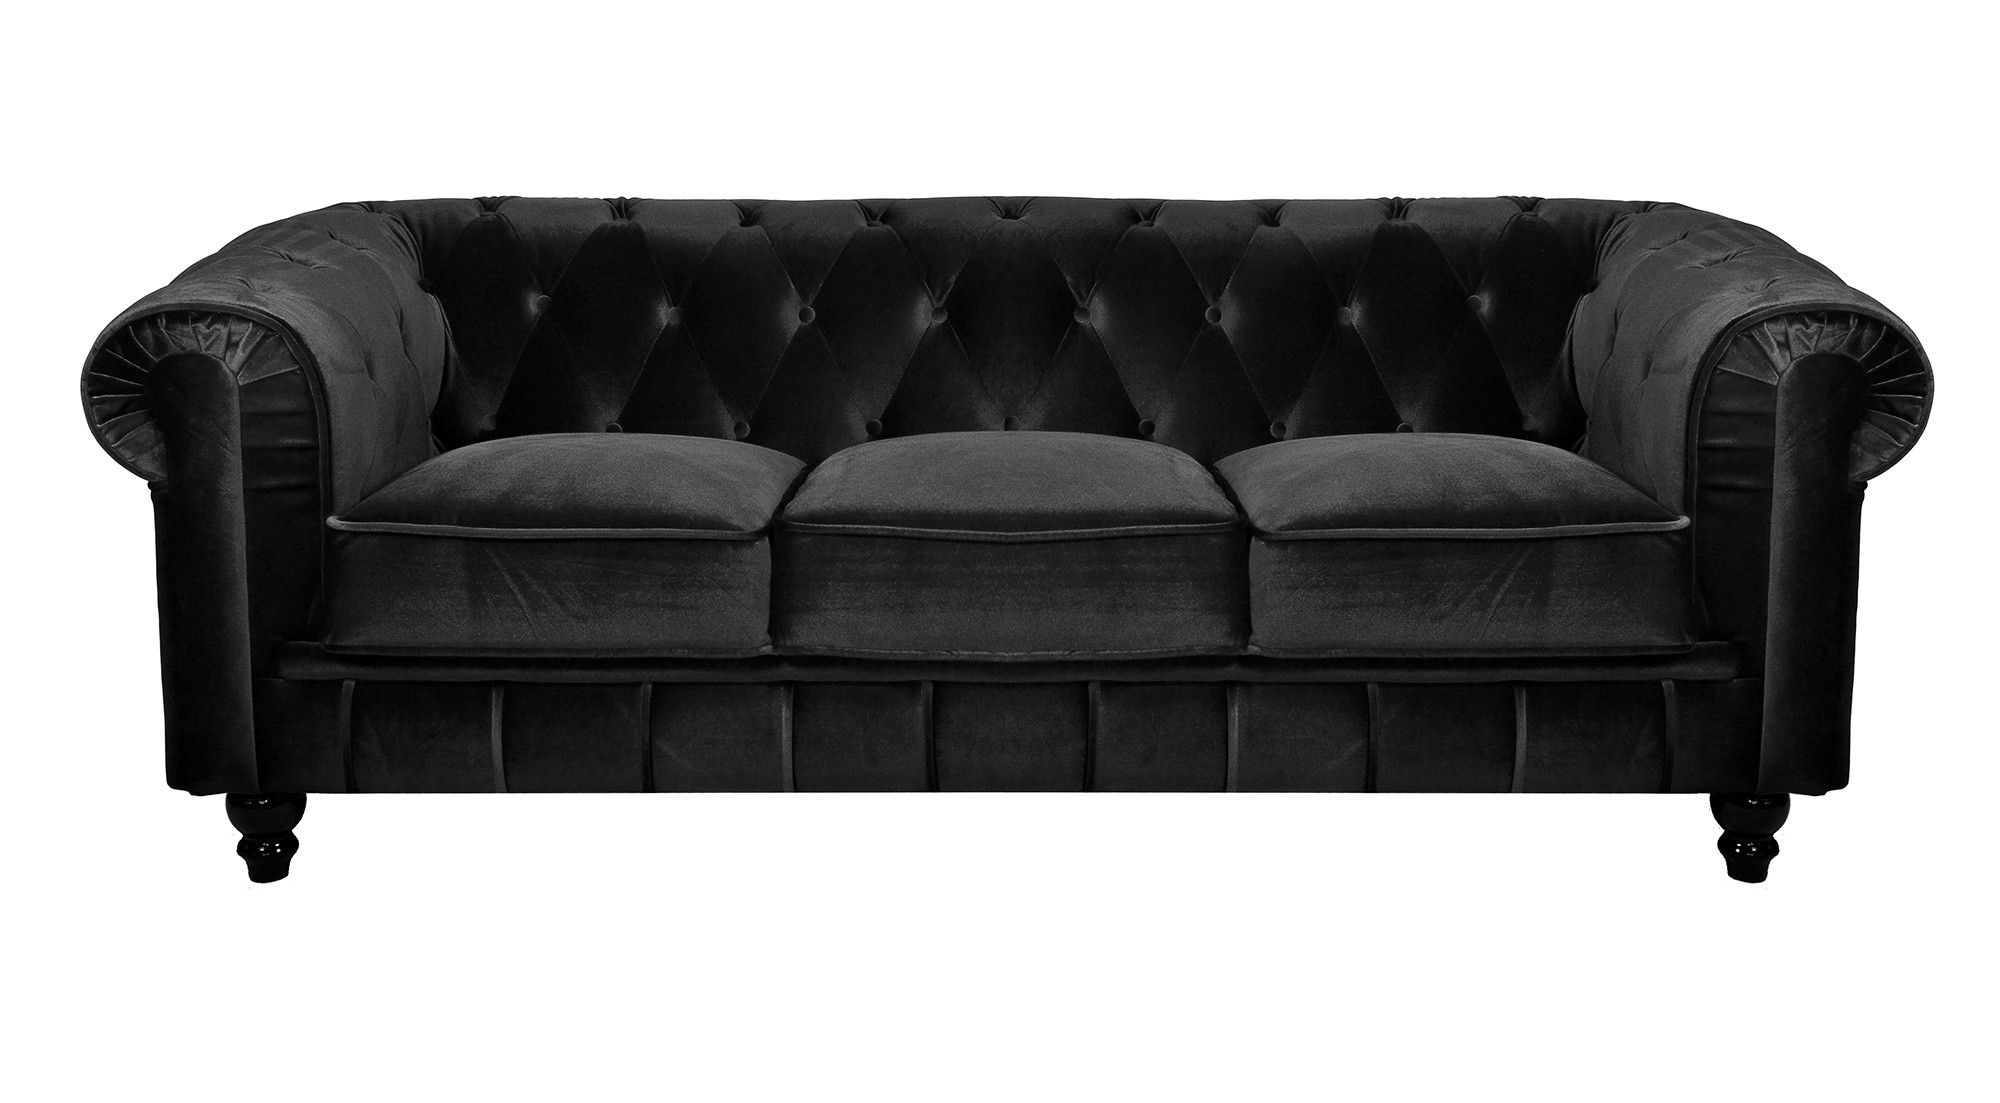 canape chesterfield convertible meilleures images d 39 inspiration pour votre design de maison. Black Bedroom Furniture Sets. Home Design Ideas